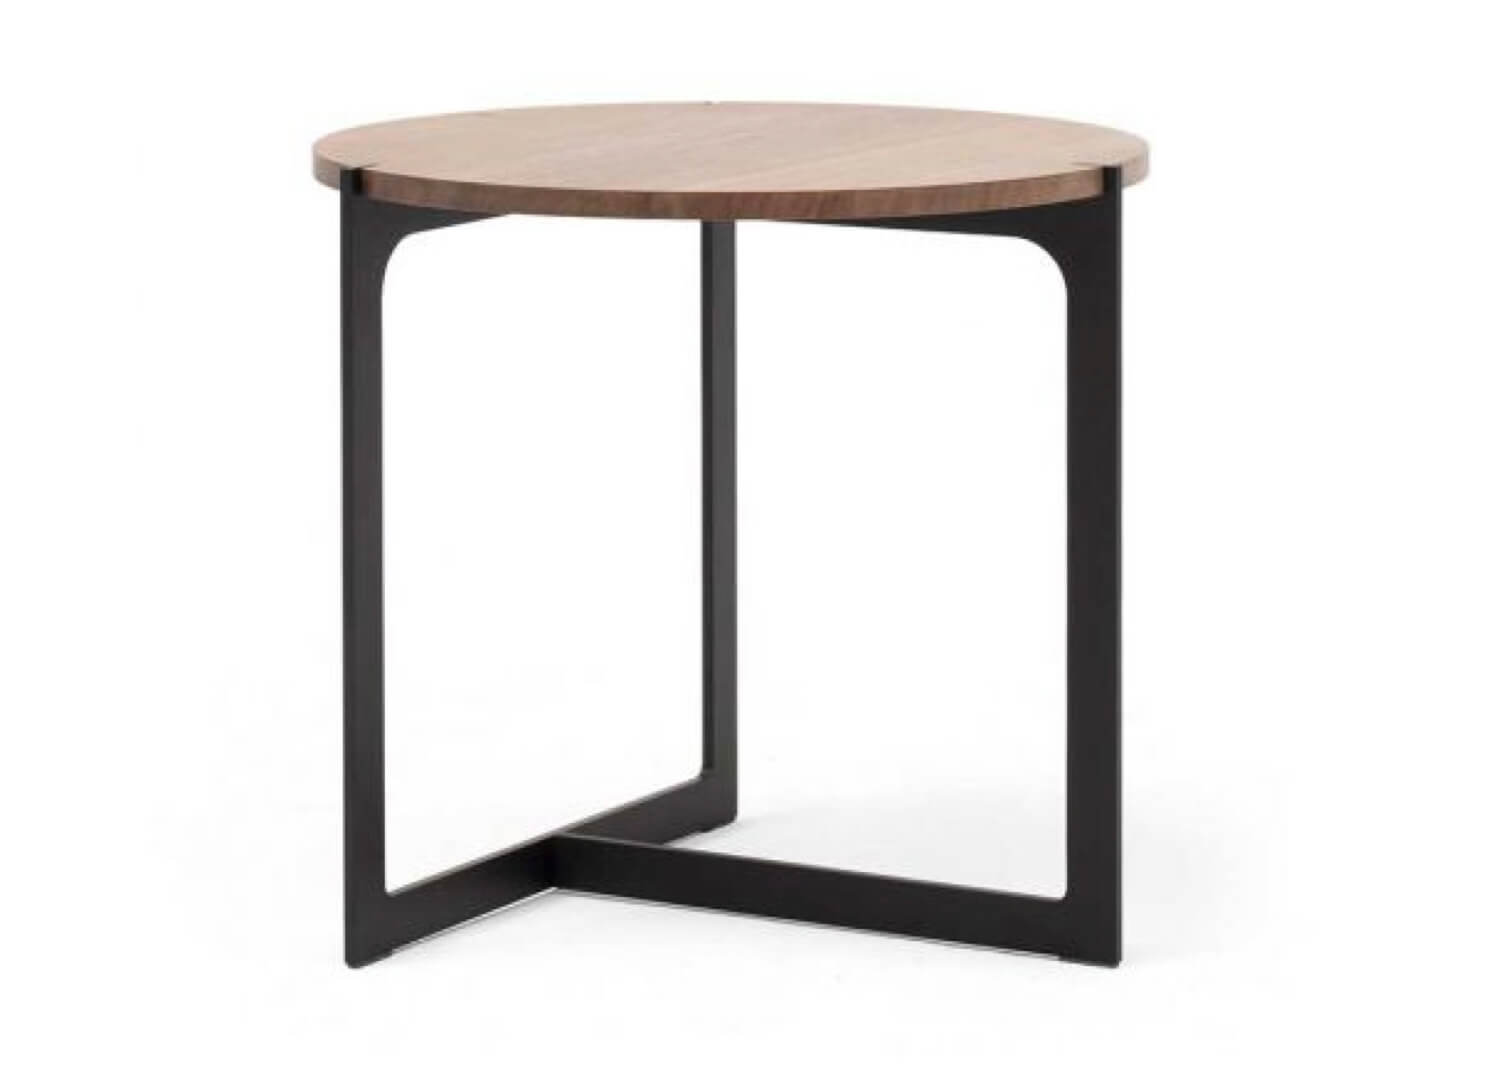 est living design directory innate side table 60 night spence and lyda1